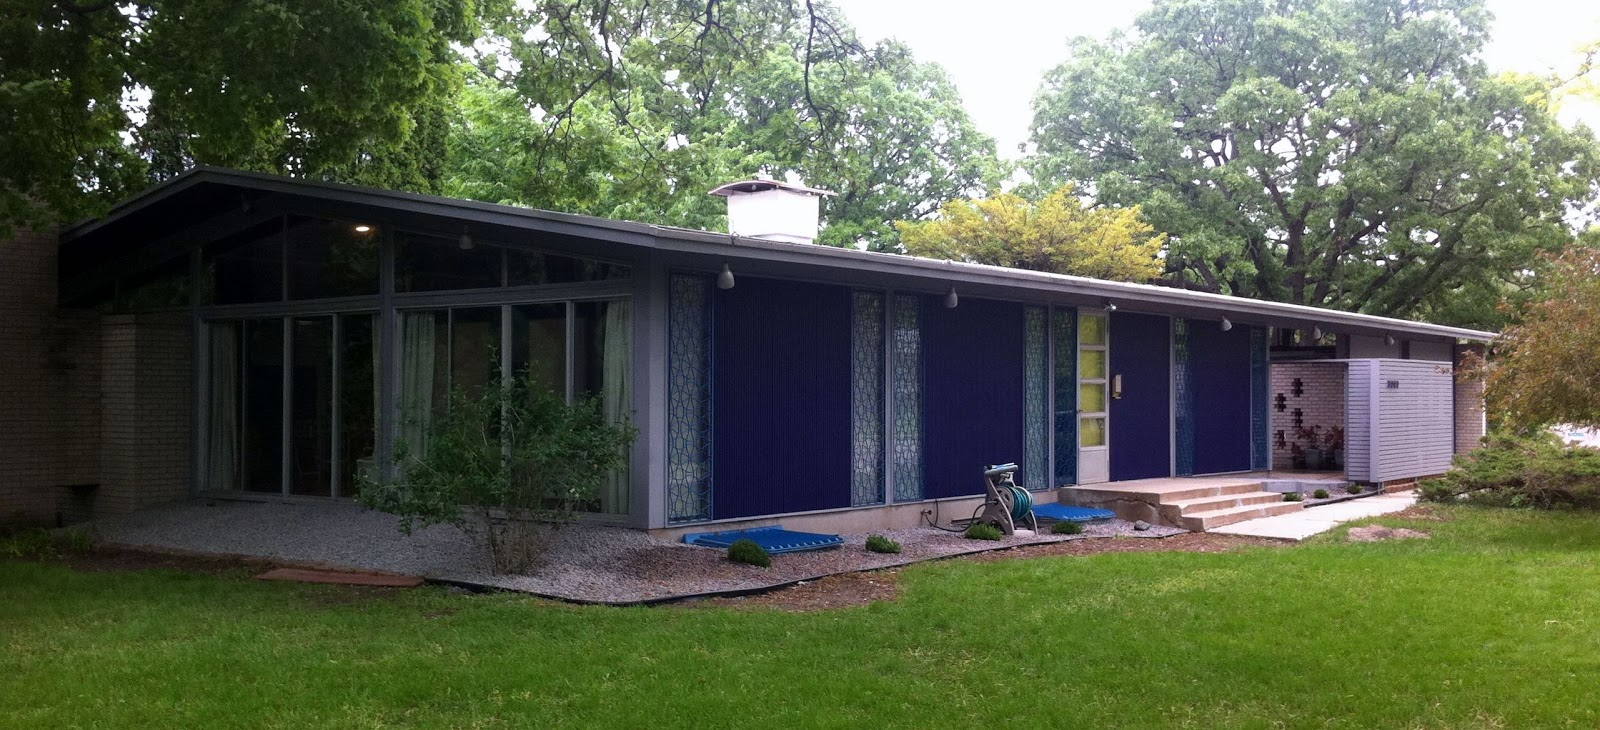 our care-free home: 2011